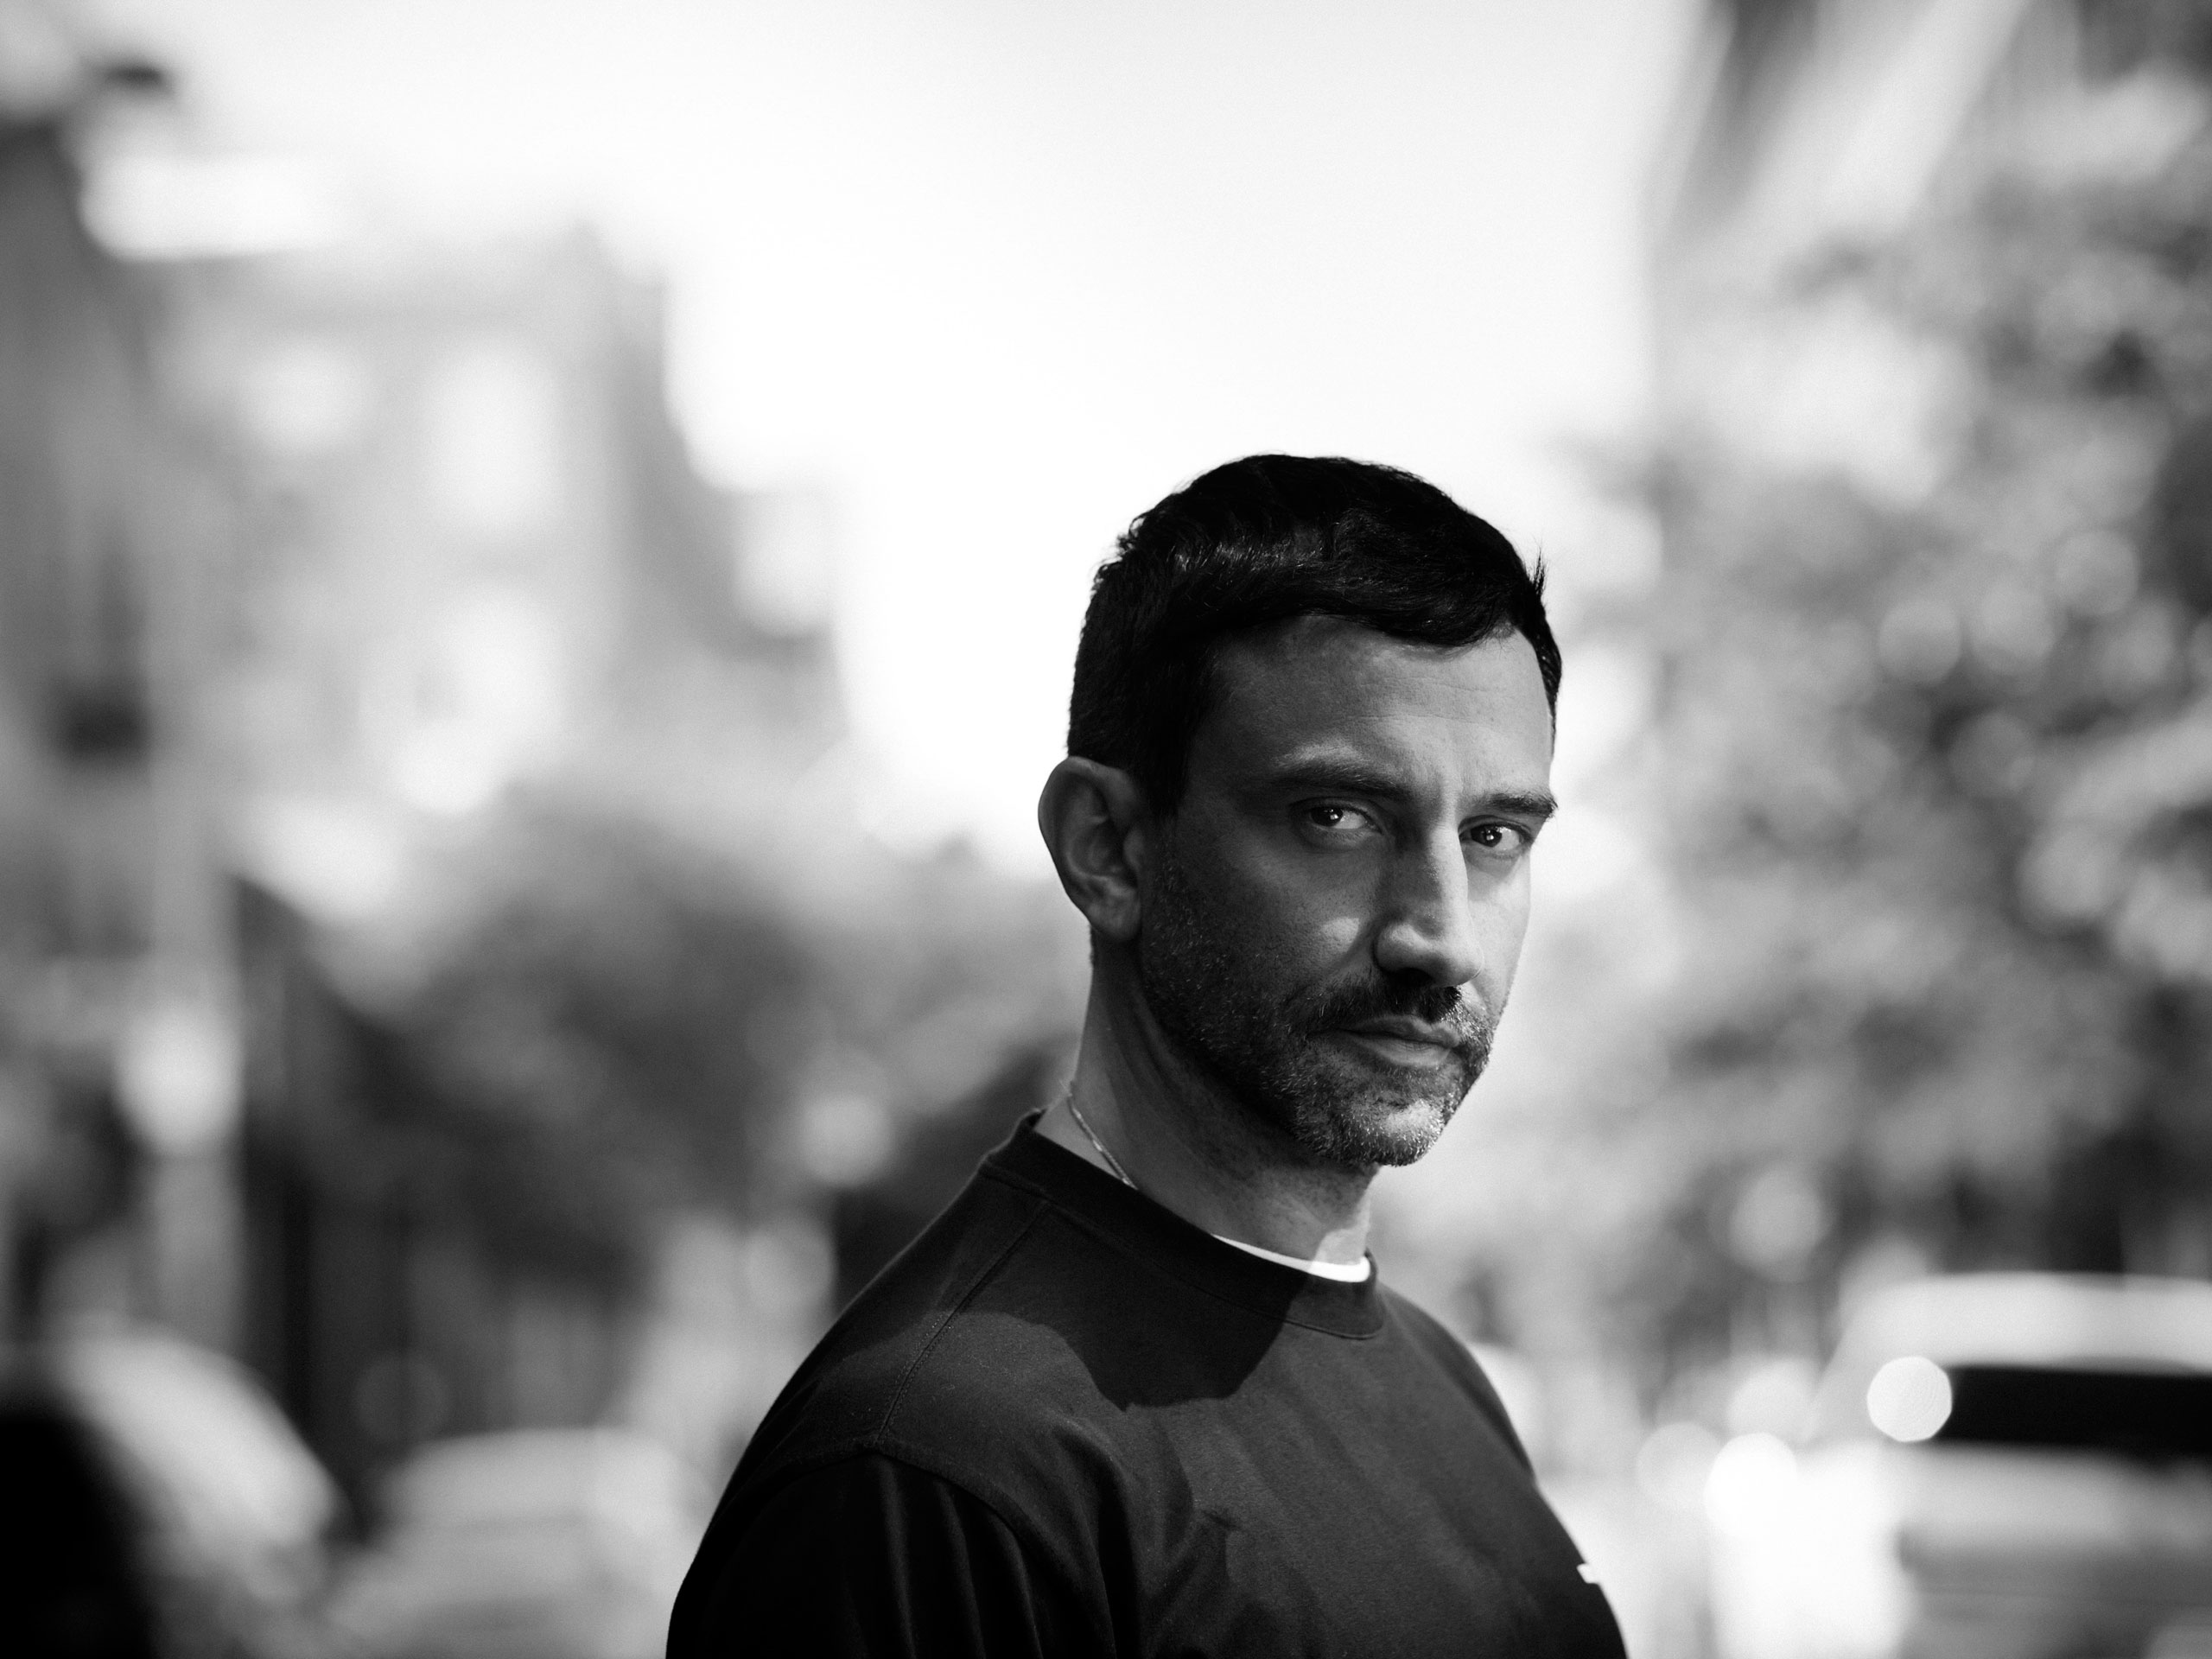 Riccardo Tisci, the Givenchy creative director, in New York City on Sept. 14, 2015.